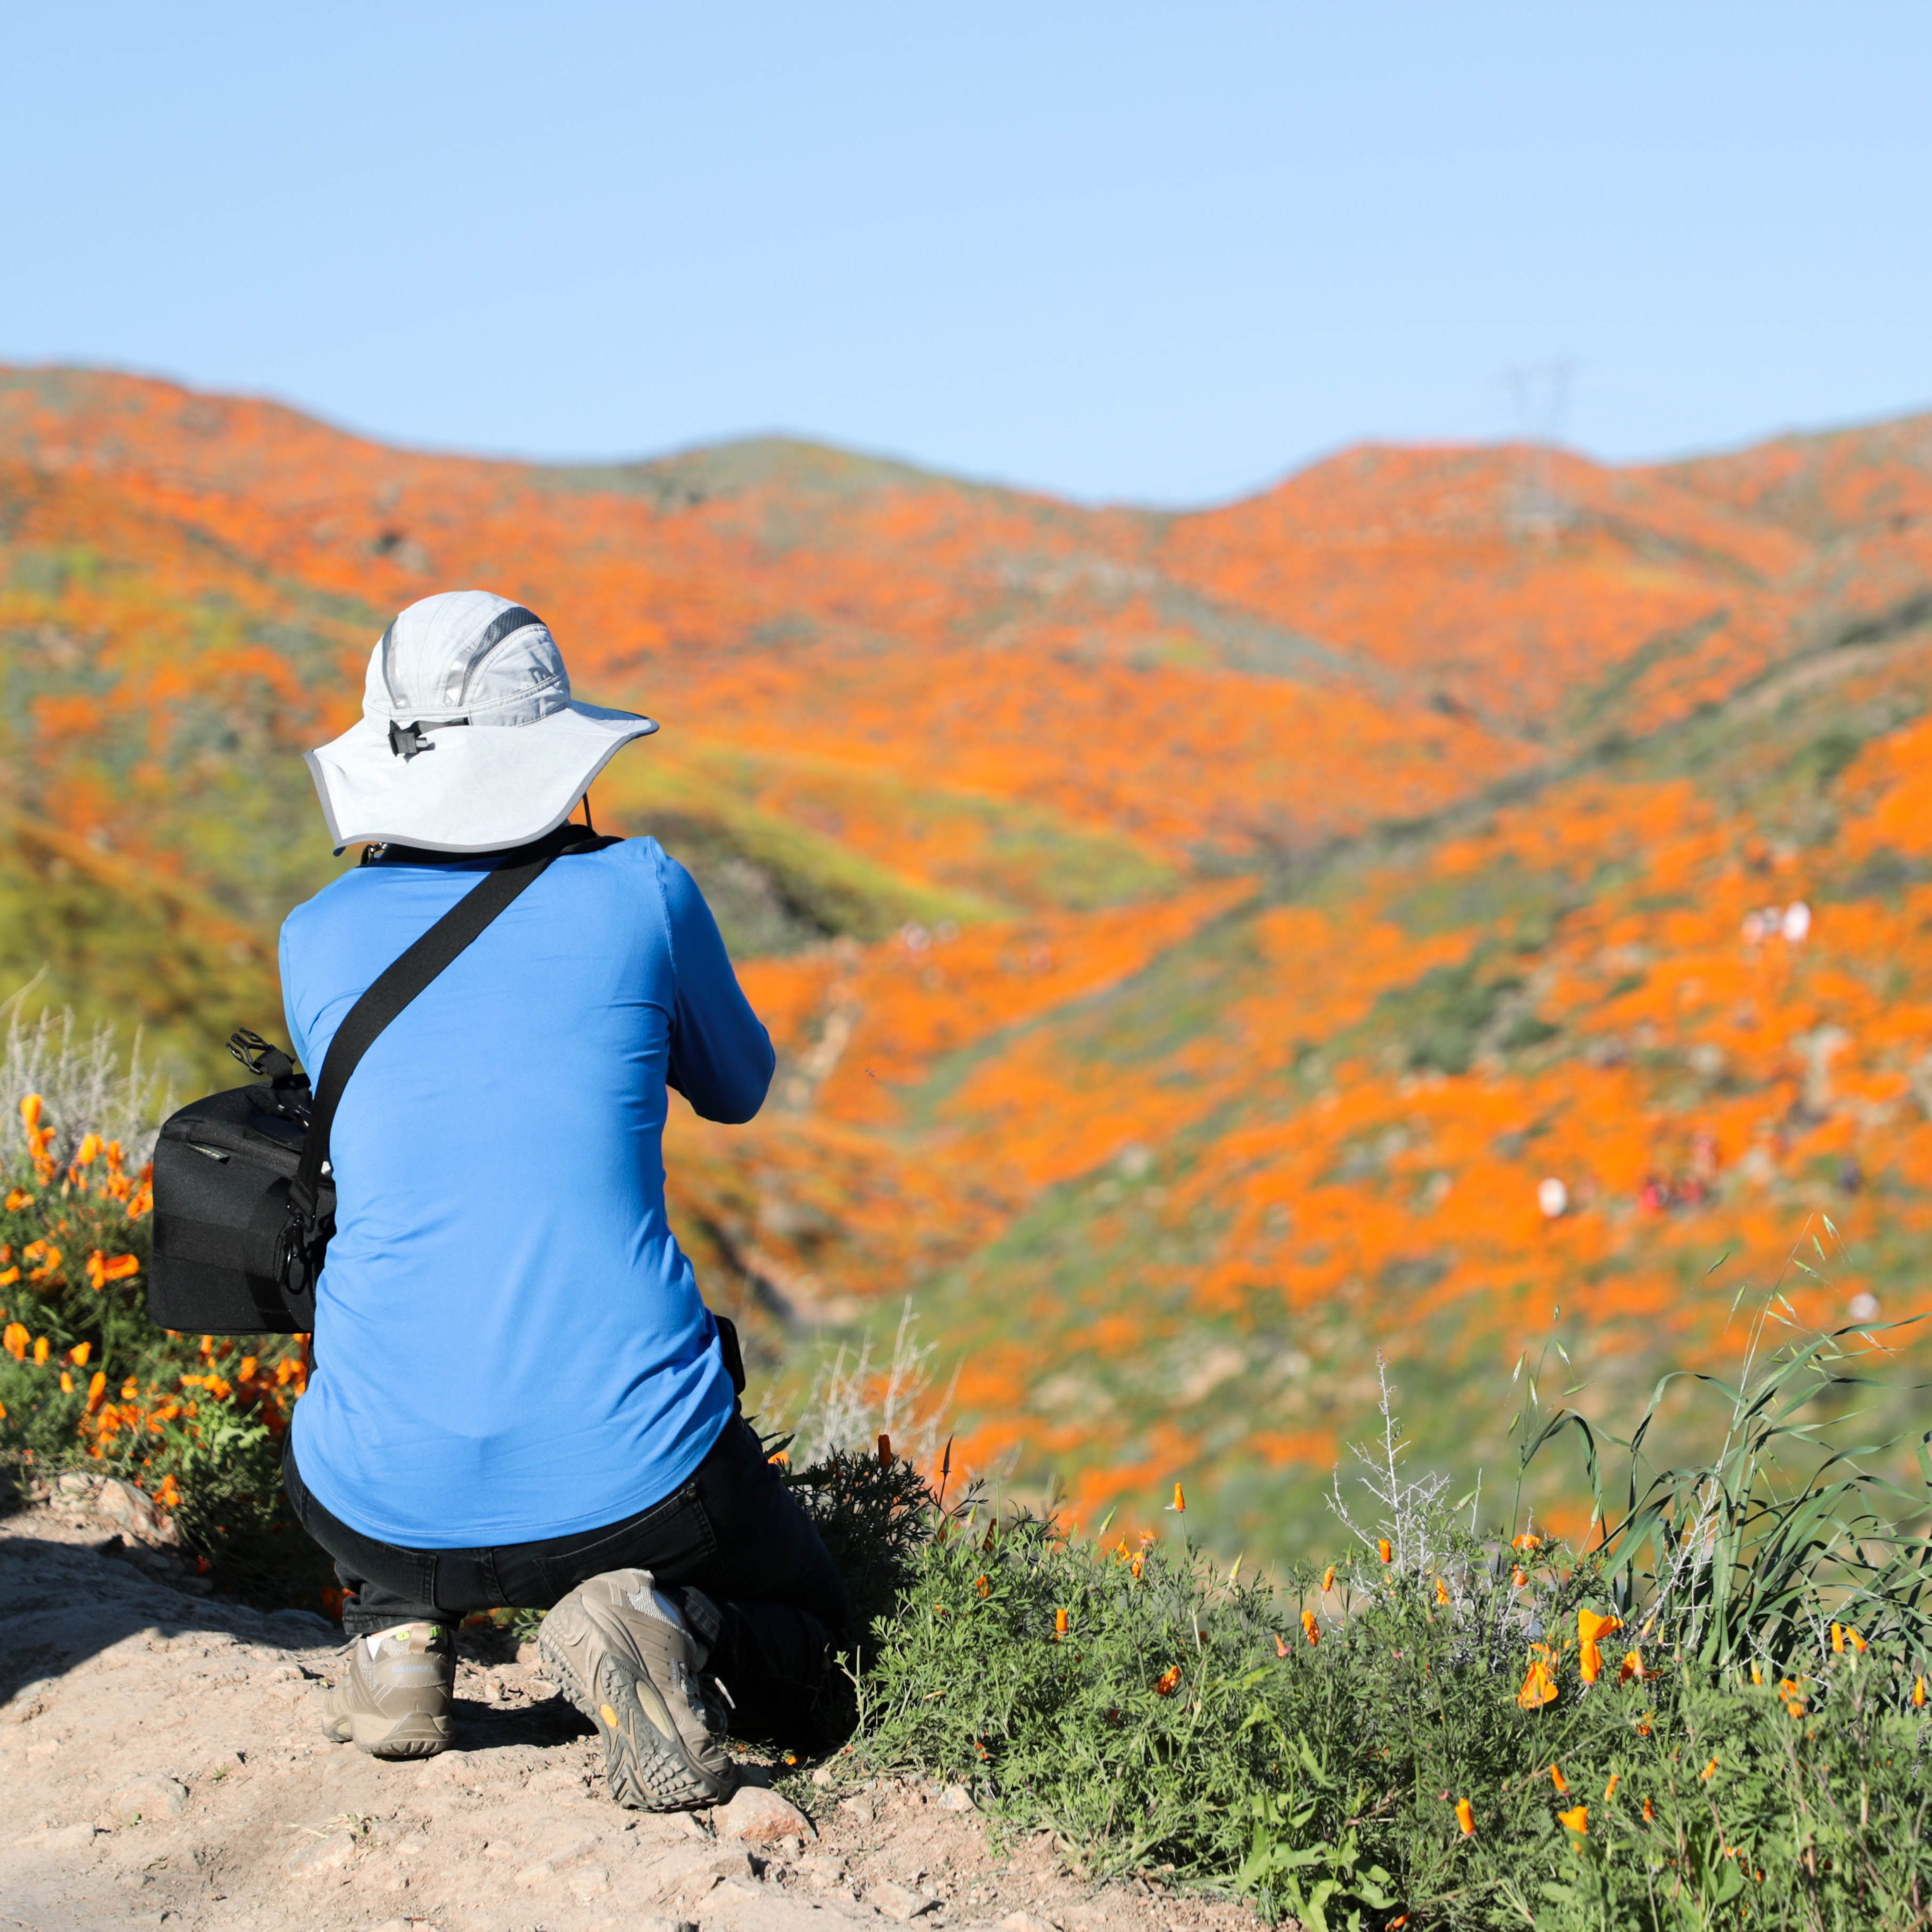 You're going to have to pay $10 to see Lake Elsinore's poppy super bloom this weekend